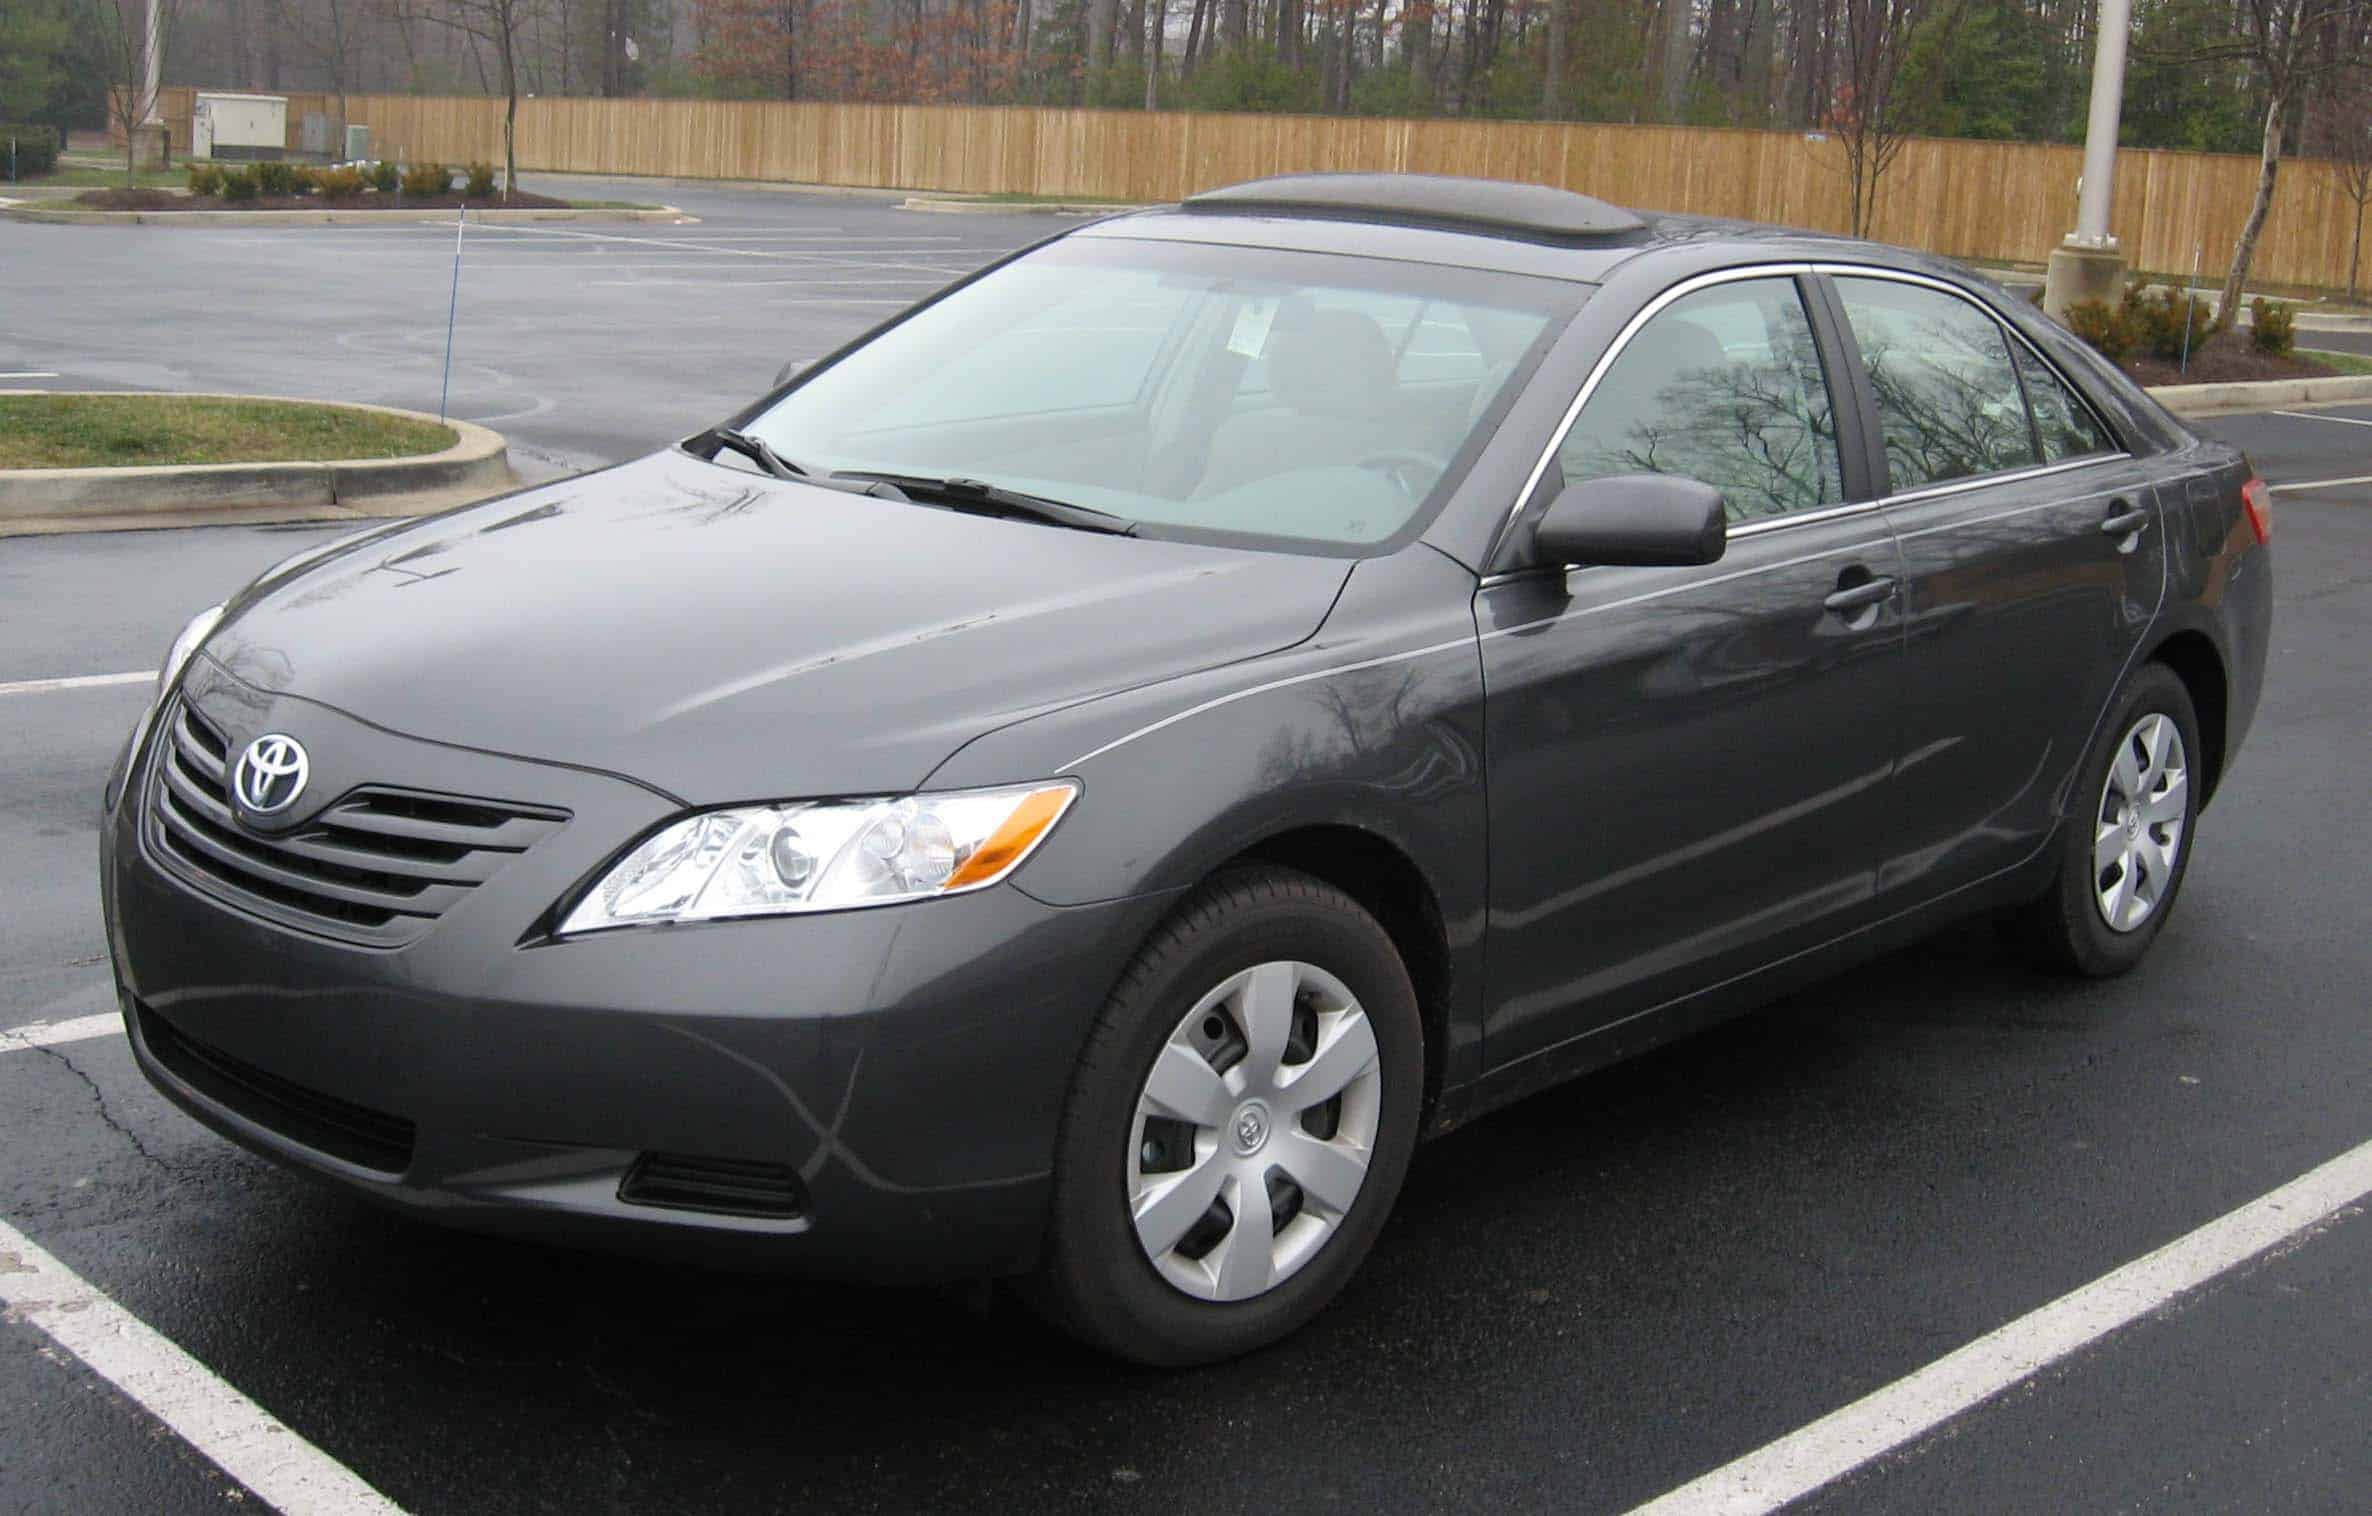 Toyota Camry Rental Cars